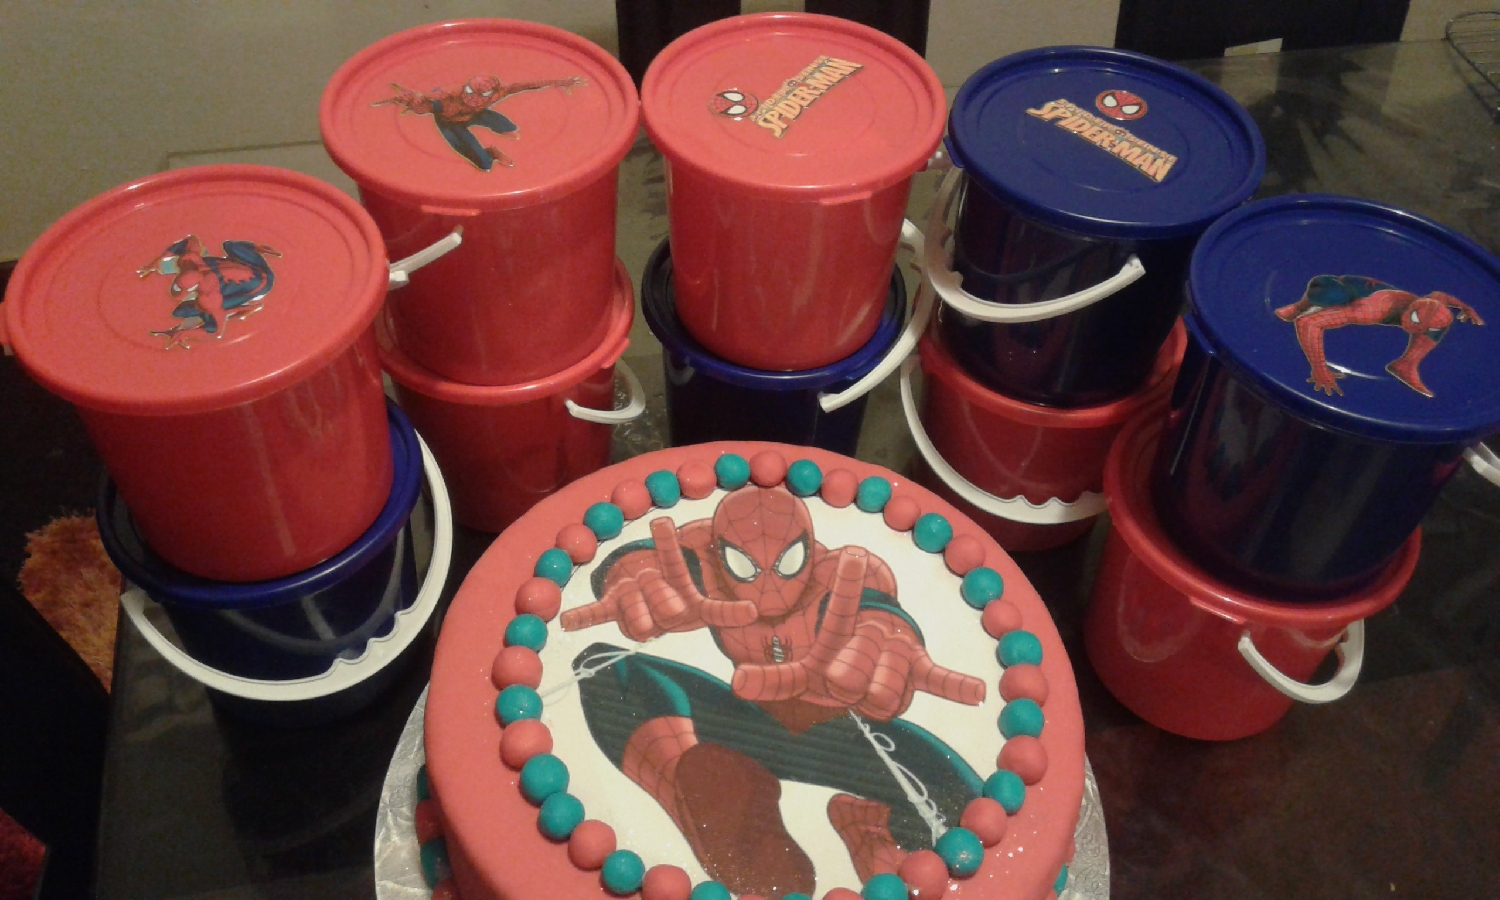 cupcakes-&amp-party-packs-for-school